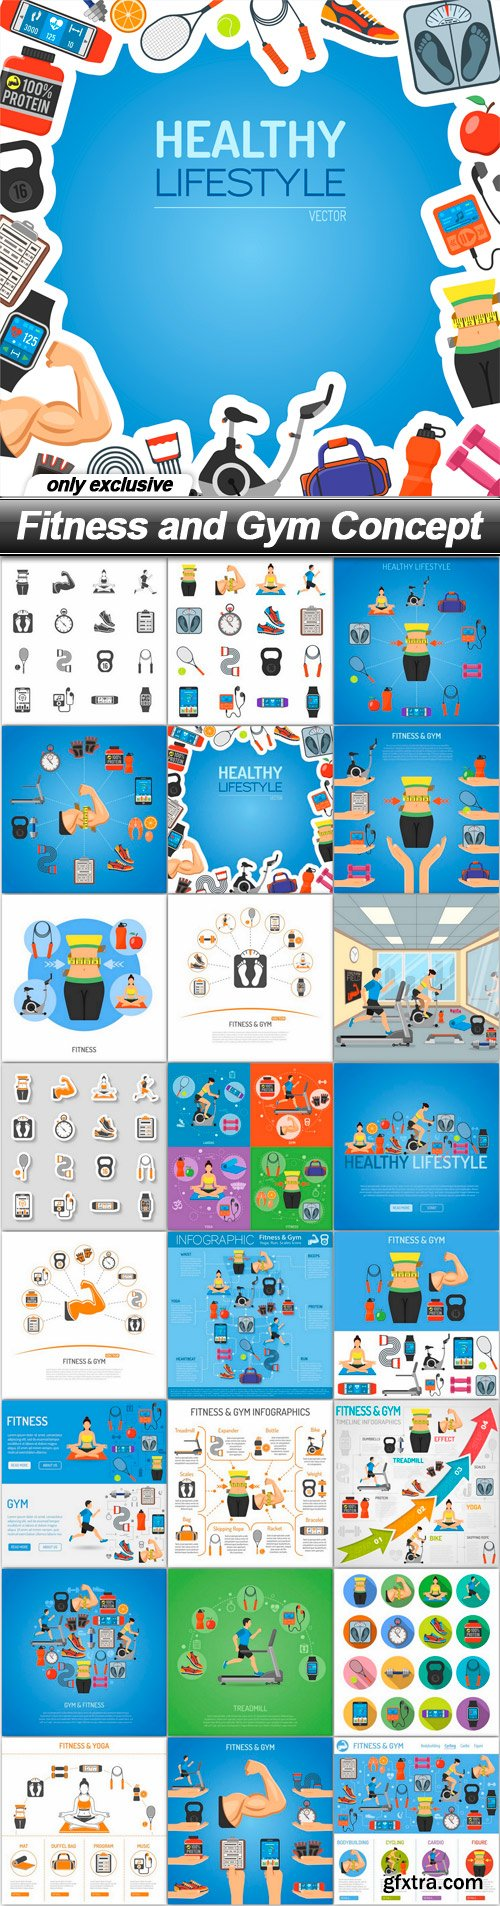 Fitness and Gym Concept - 24 EPS